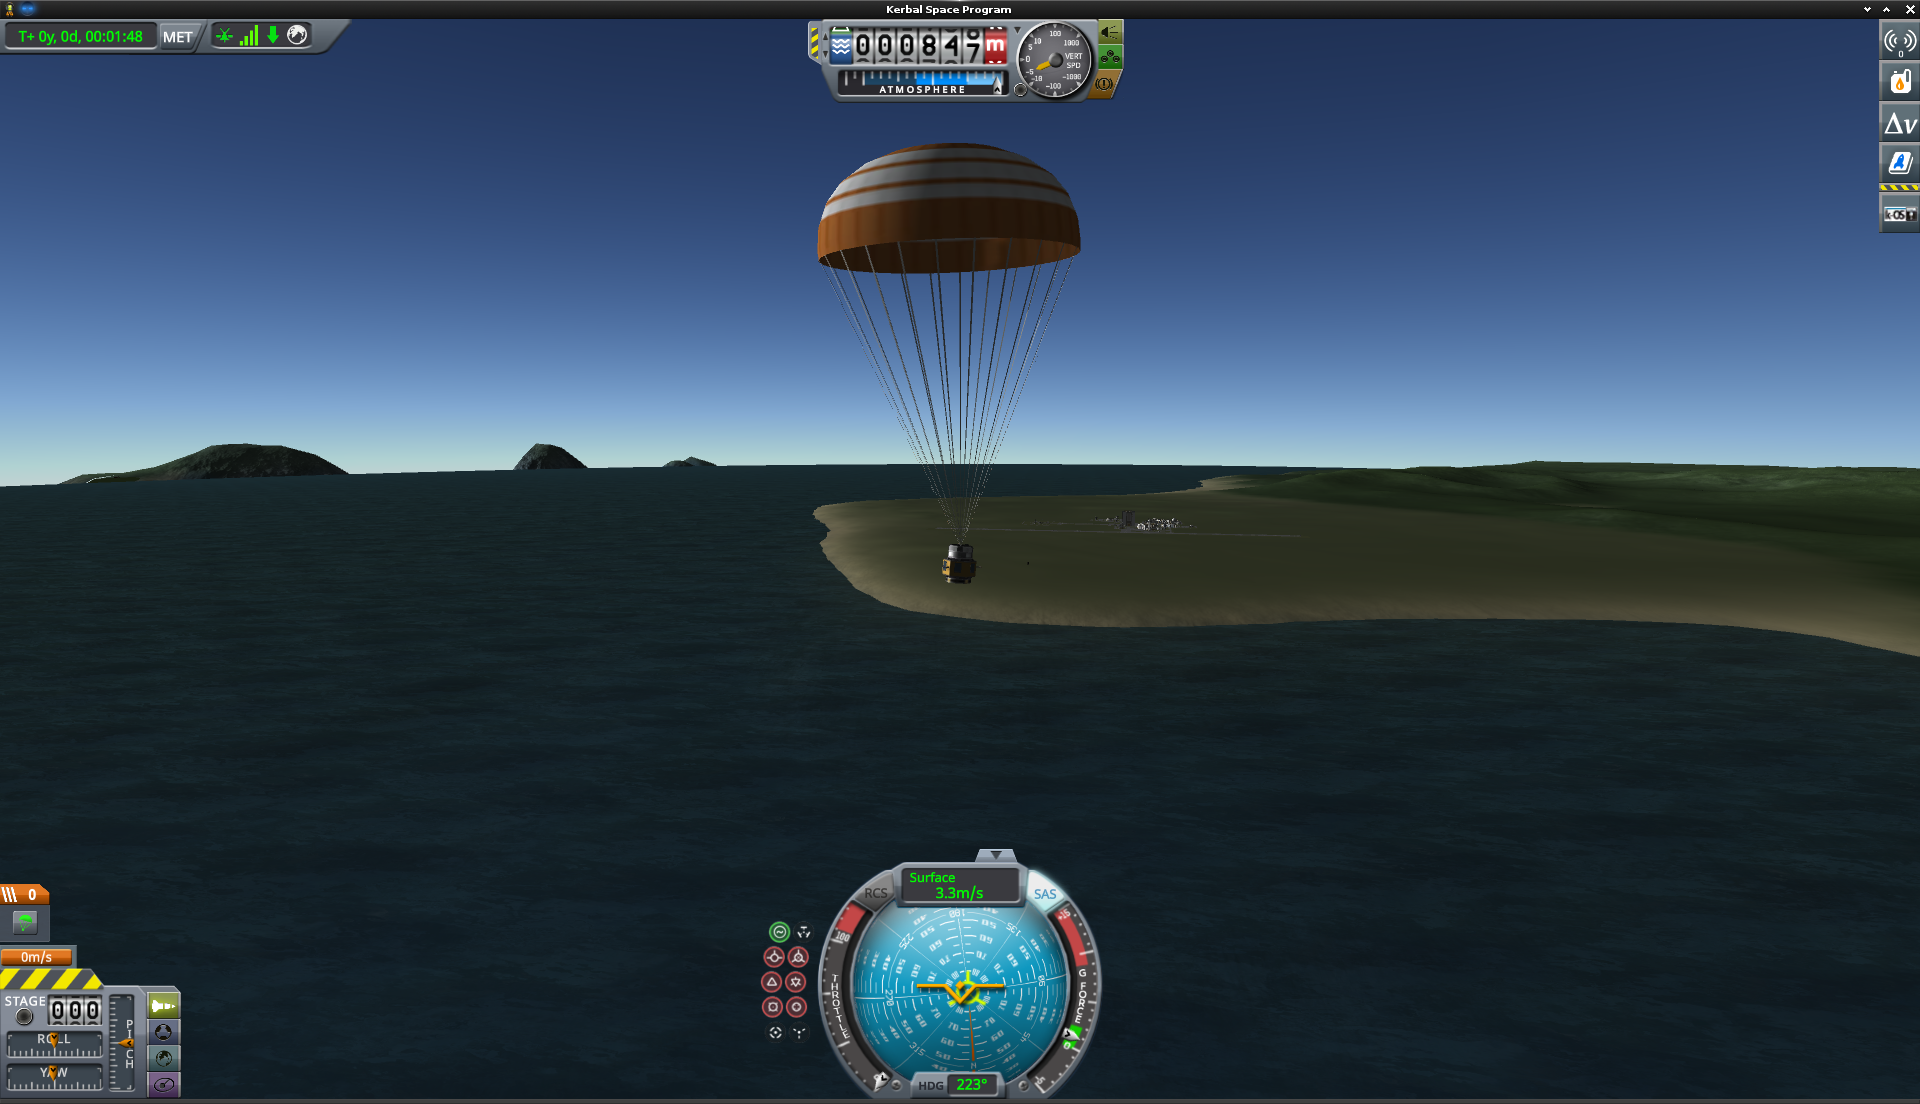 The spacecraft payload is slowly descending into the sea near the Kerbal Space Center, thanks to a fully opened parachute.